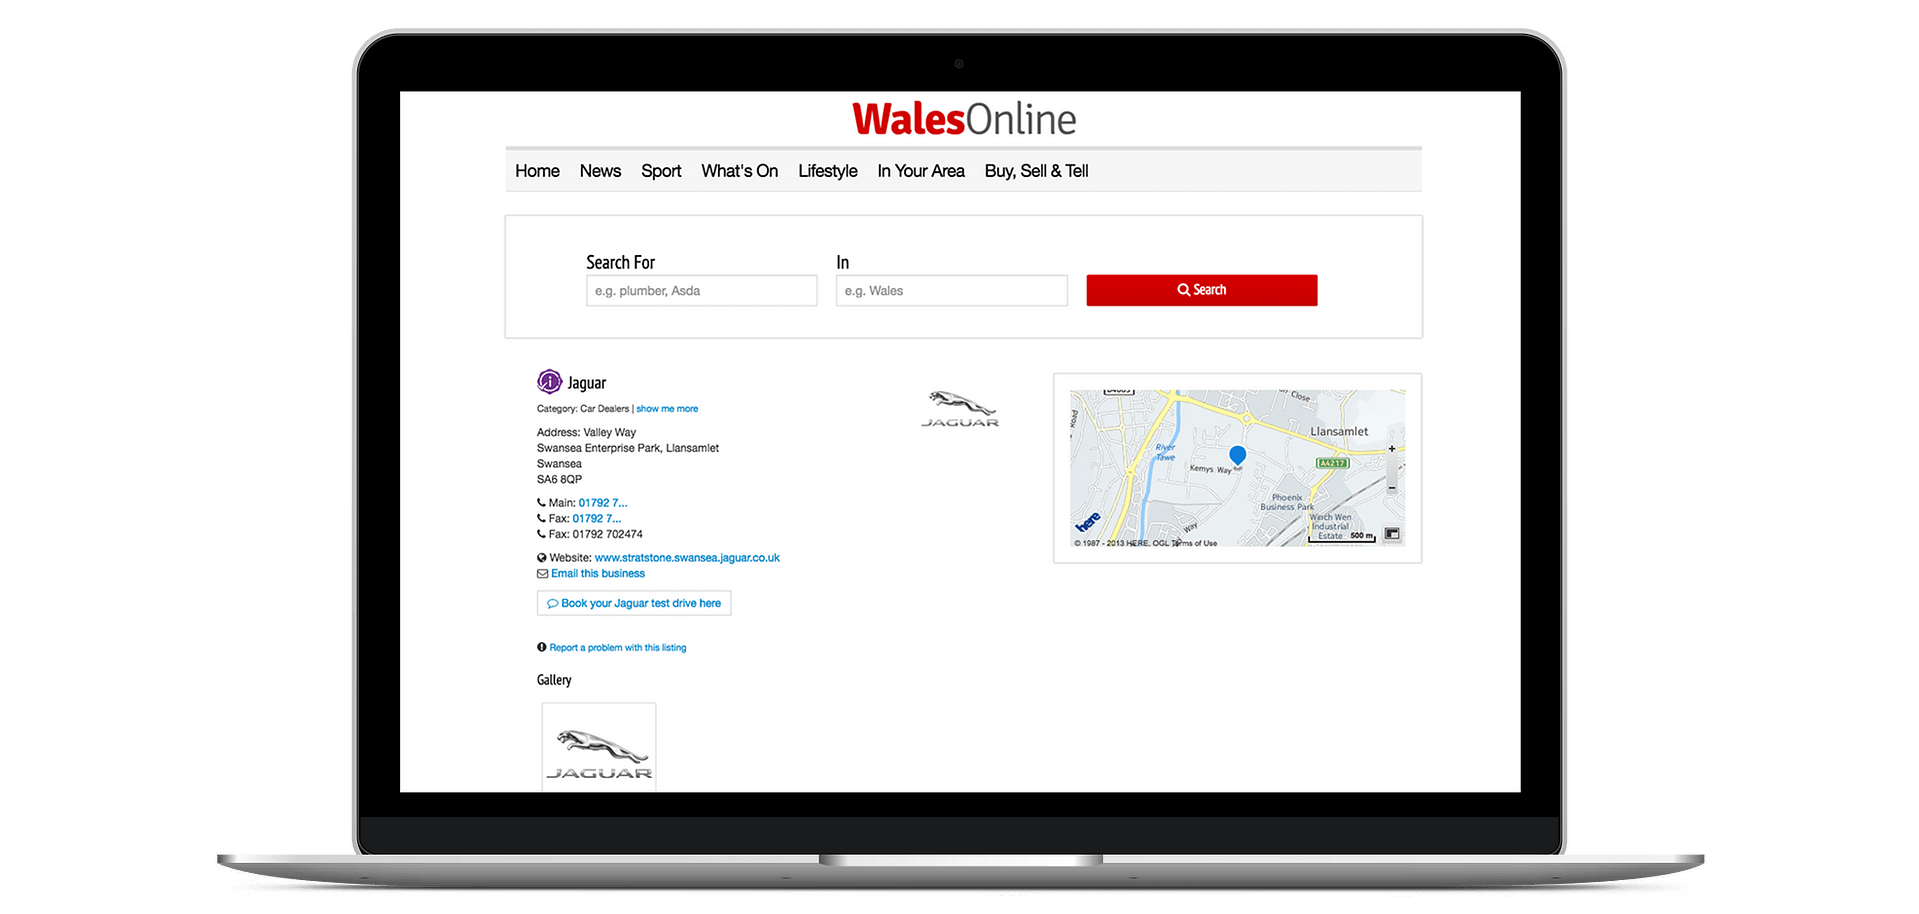 Add Your Business to WalesOnline